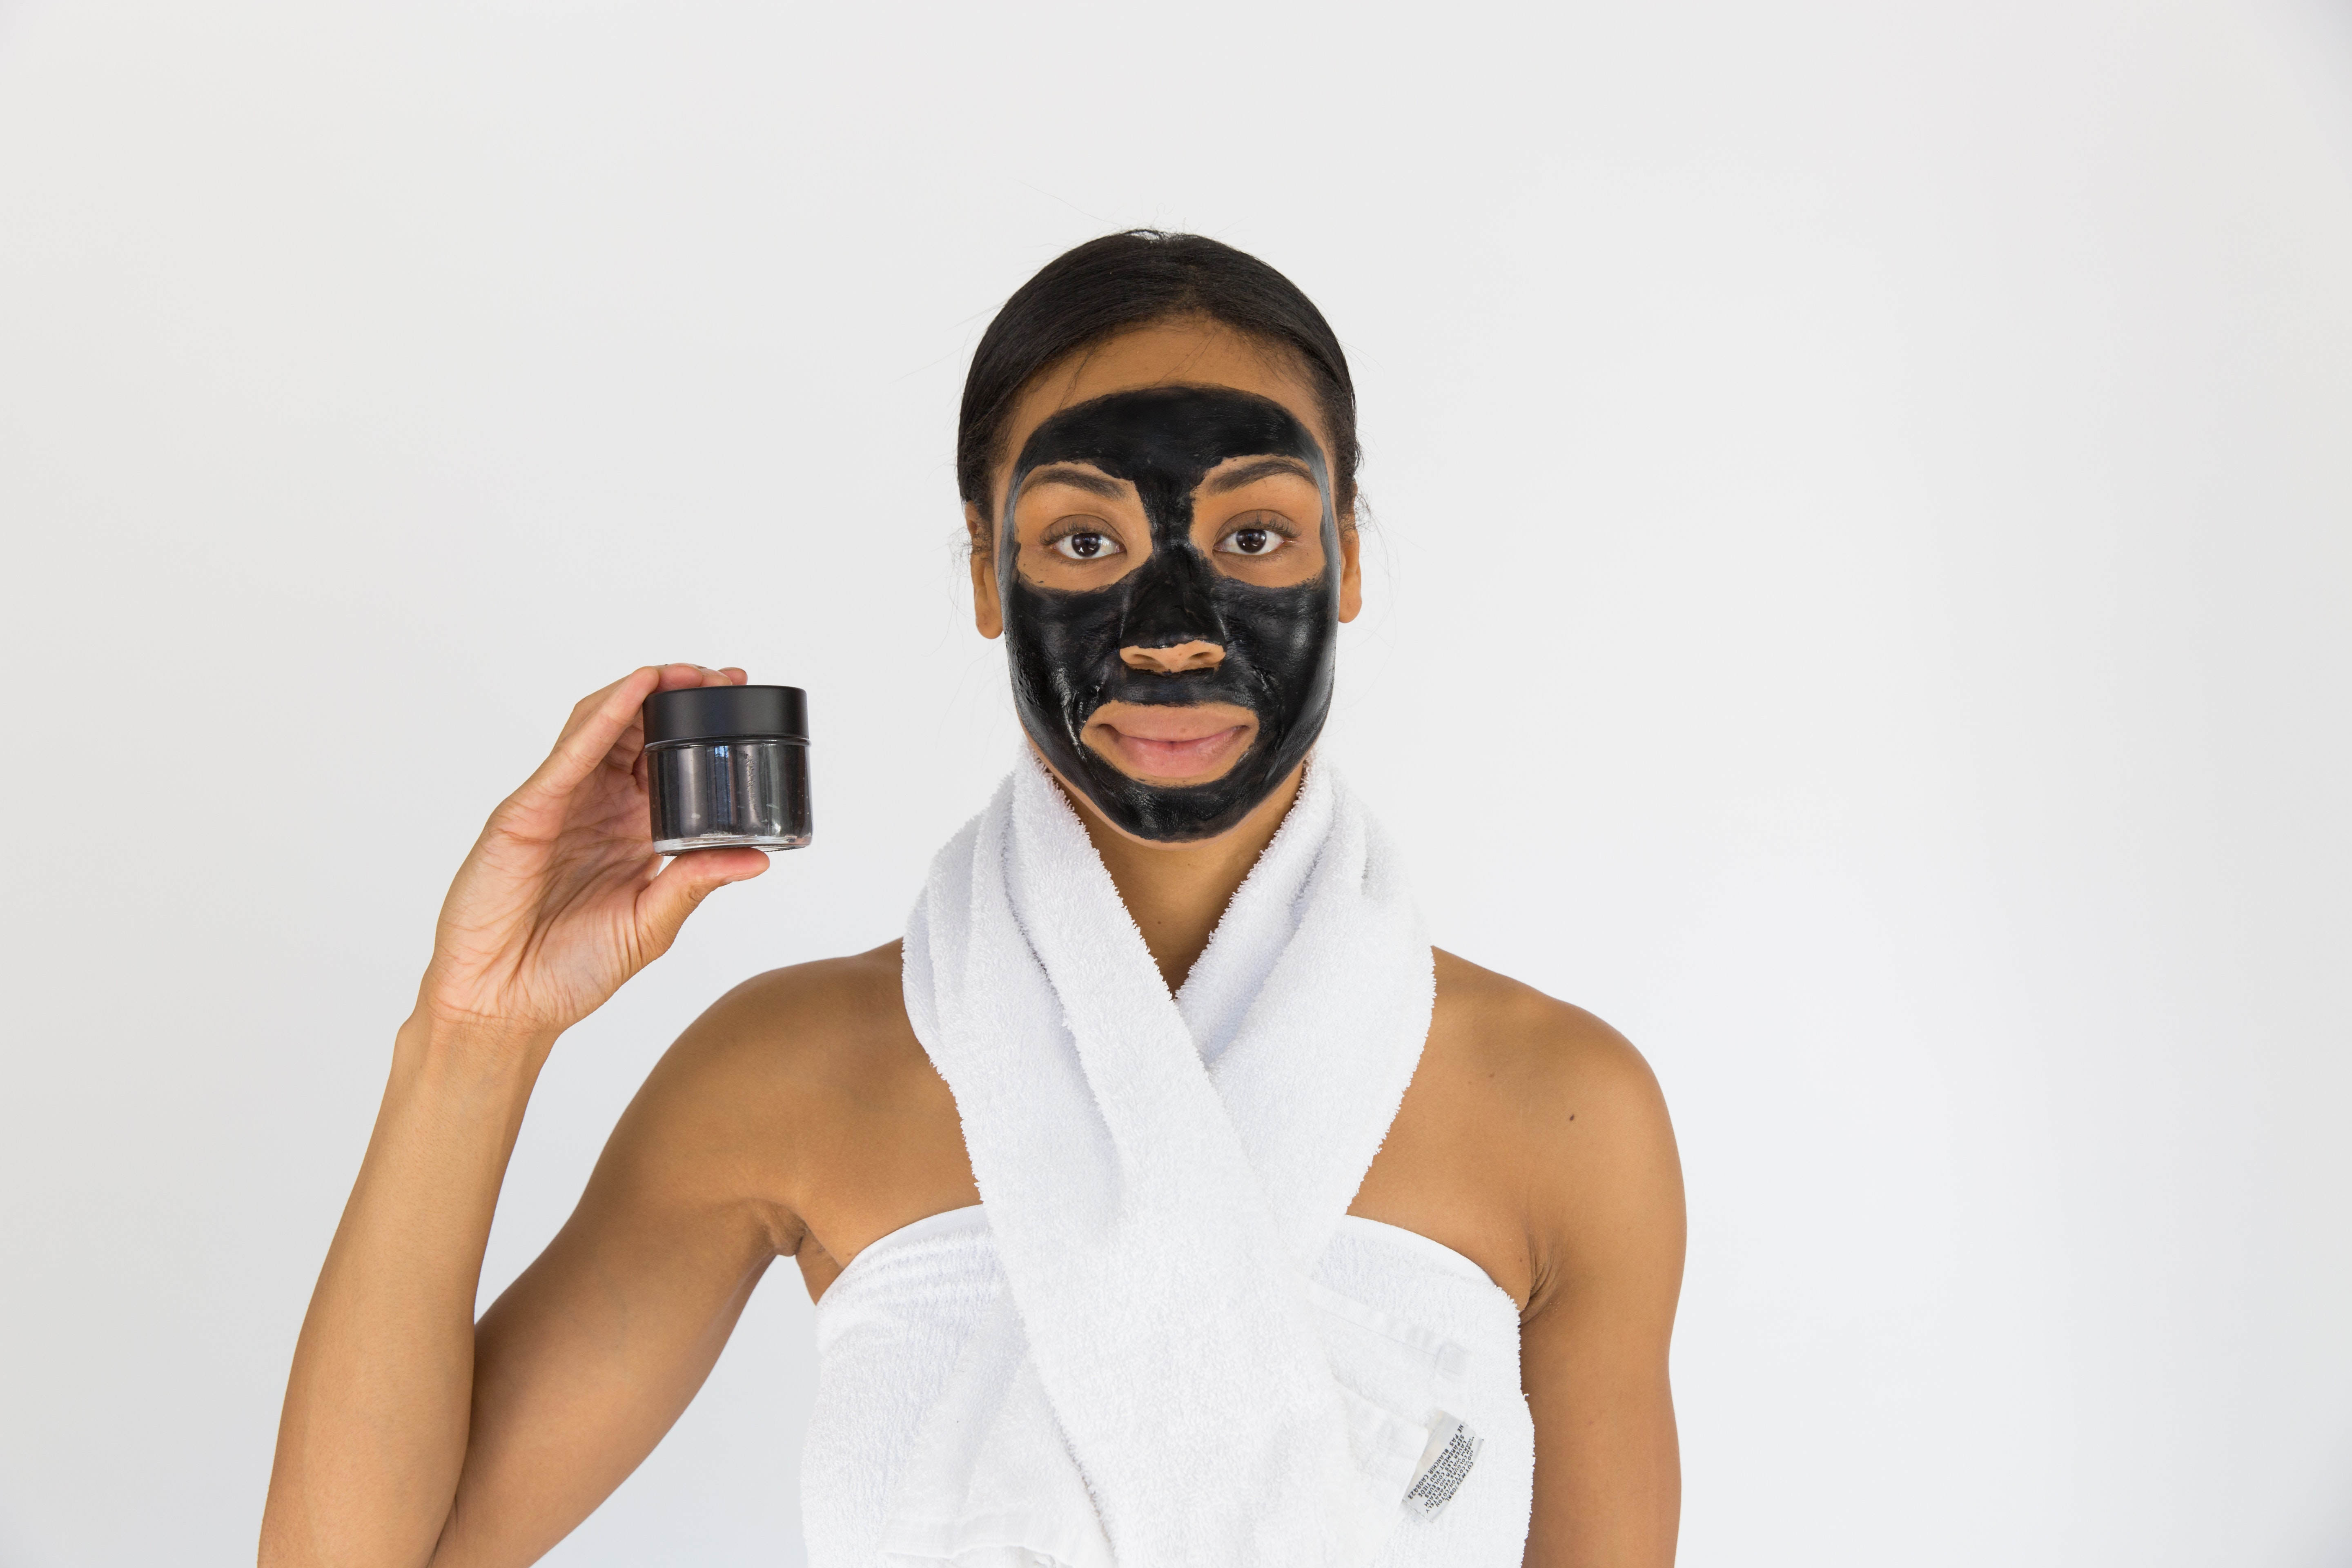 Girl with a Black facial mask was holding a product